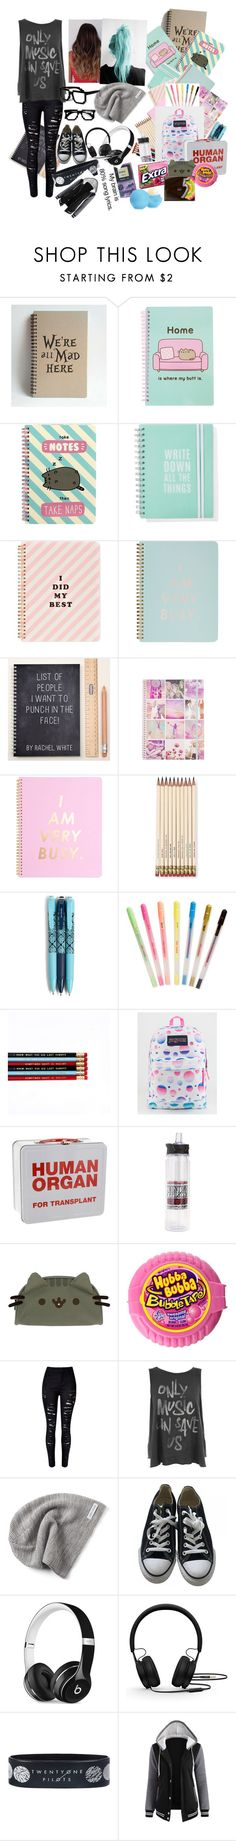 """""""Back 2 school"""" by jasminebakmcm ❤ liked on Polyvore featuring Pusheen, ban.do, Kate Spade, Vera Bradley, JanSport, WithChic, Junk Food Clothing, Converse, Beats by Dr. Dre and Retrò"""